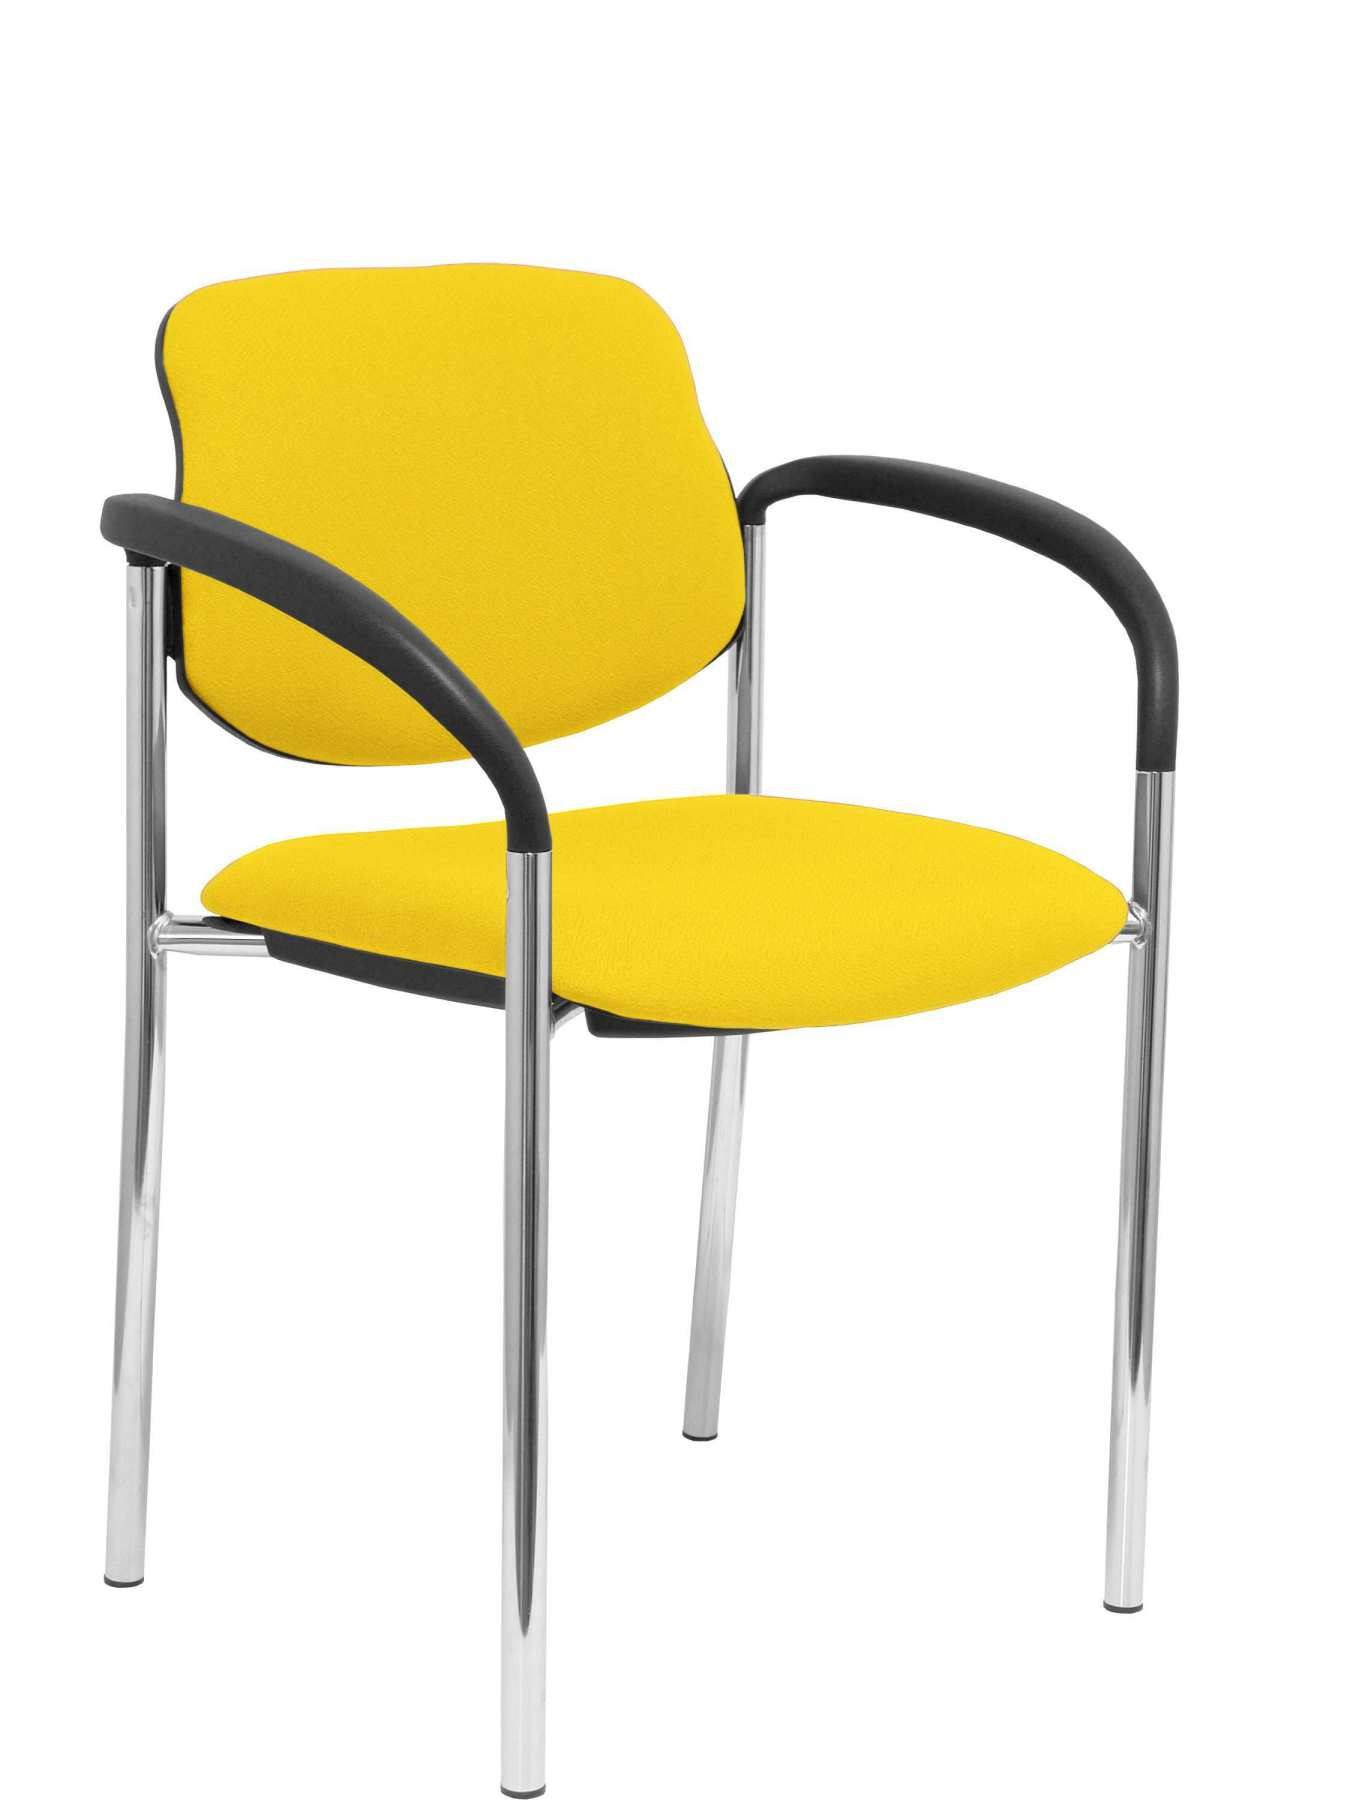 Confident Chair 4 leg and estructrua chrome arms Seat and back upholstered in fabric BALI yellow|  - title=